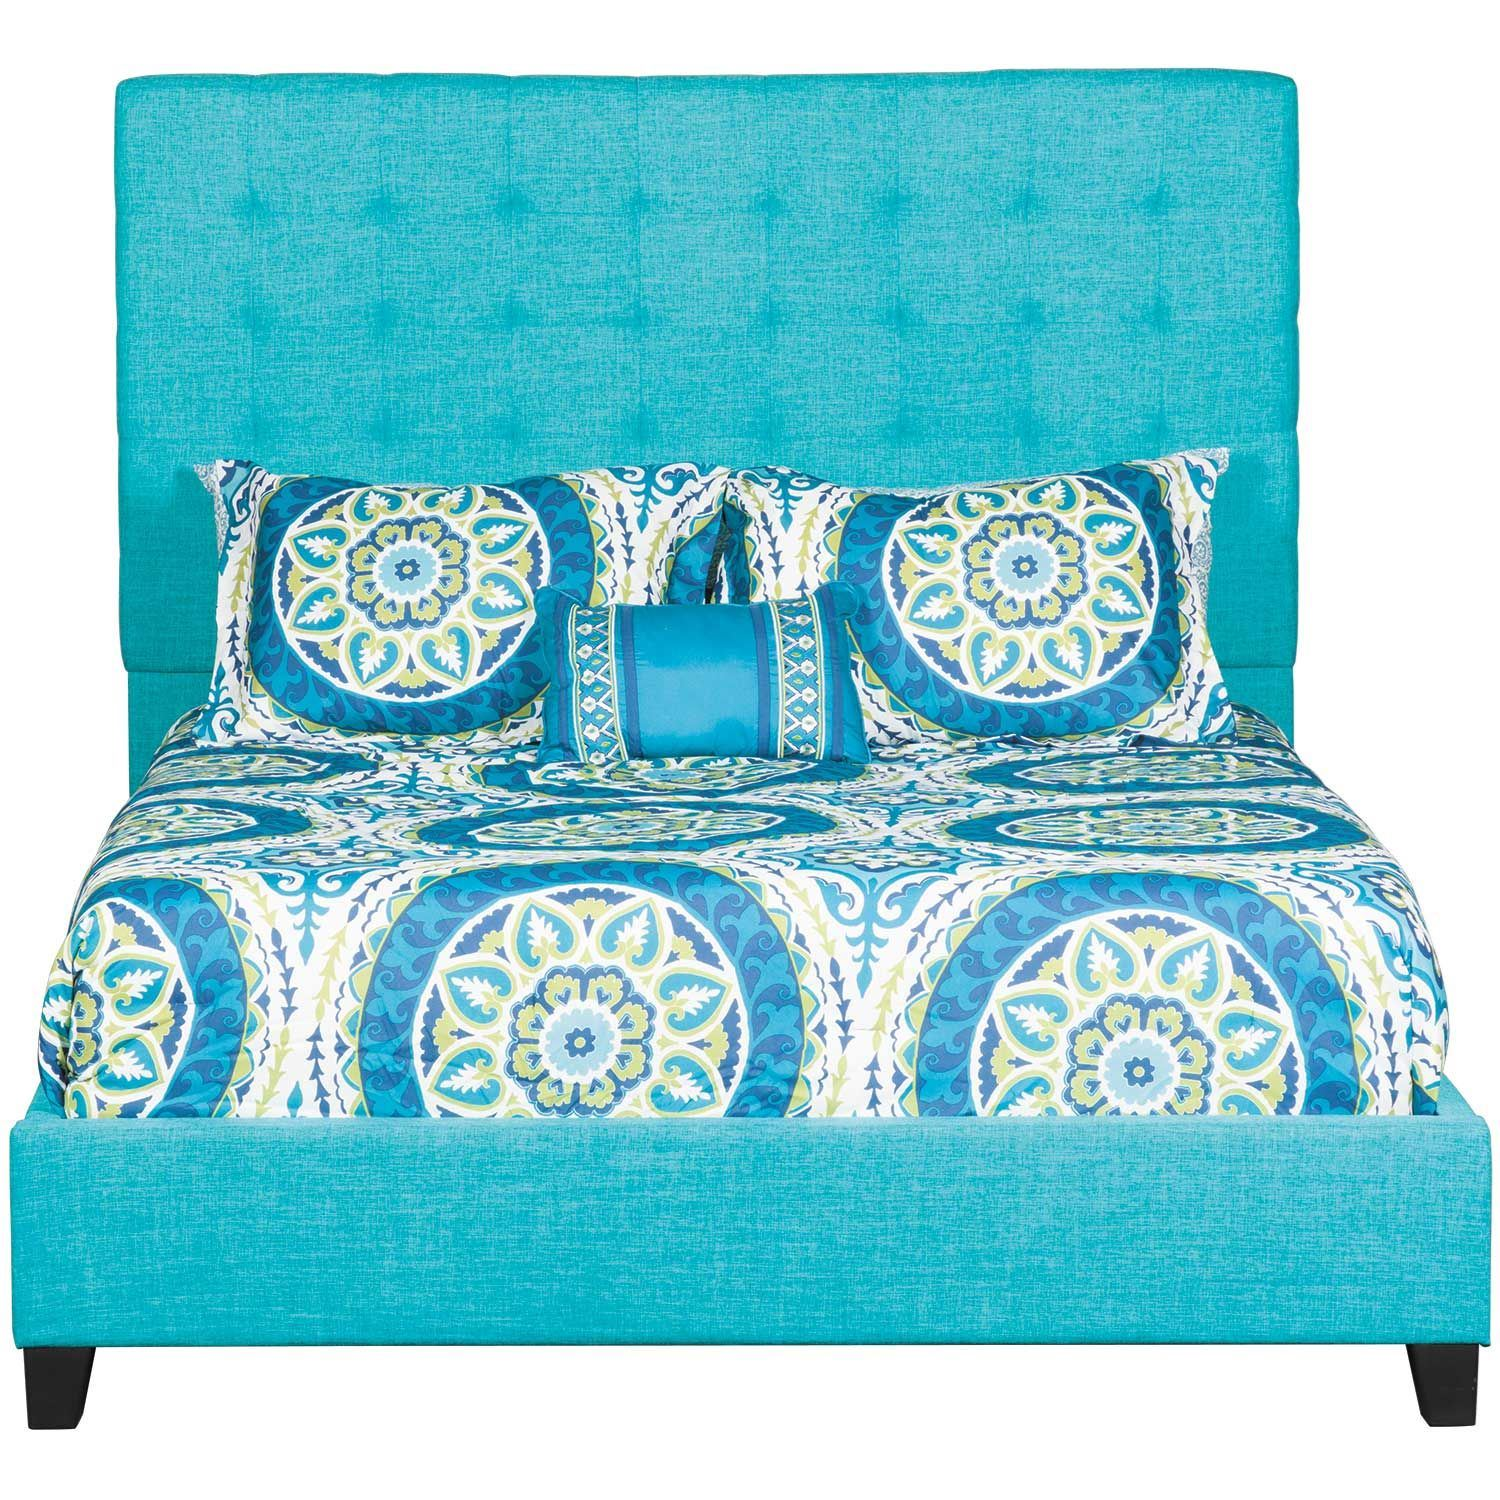 Picture of Florence Upholstered Teal King Bed